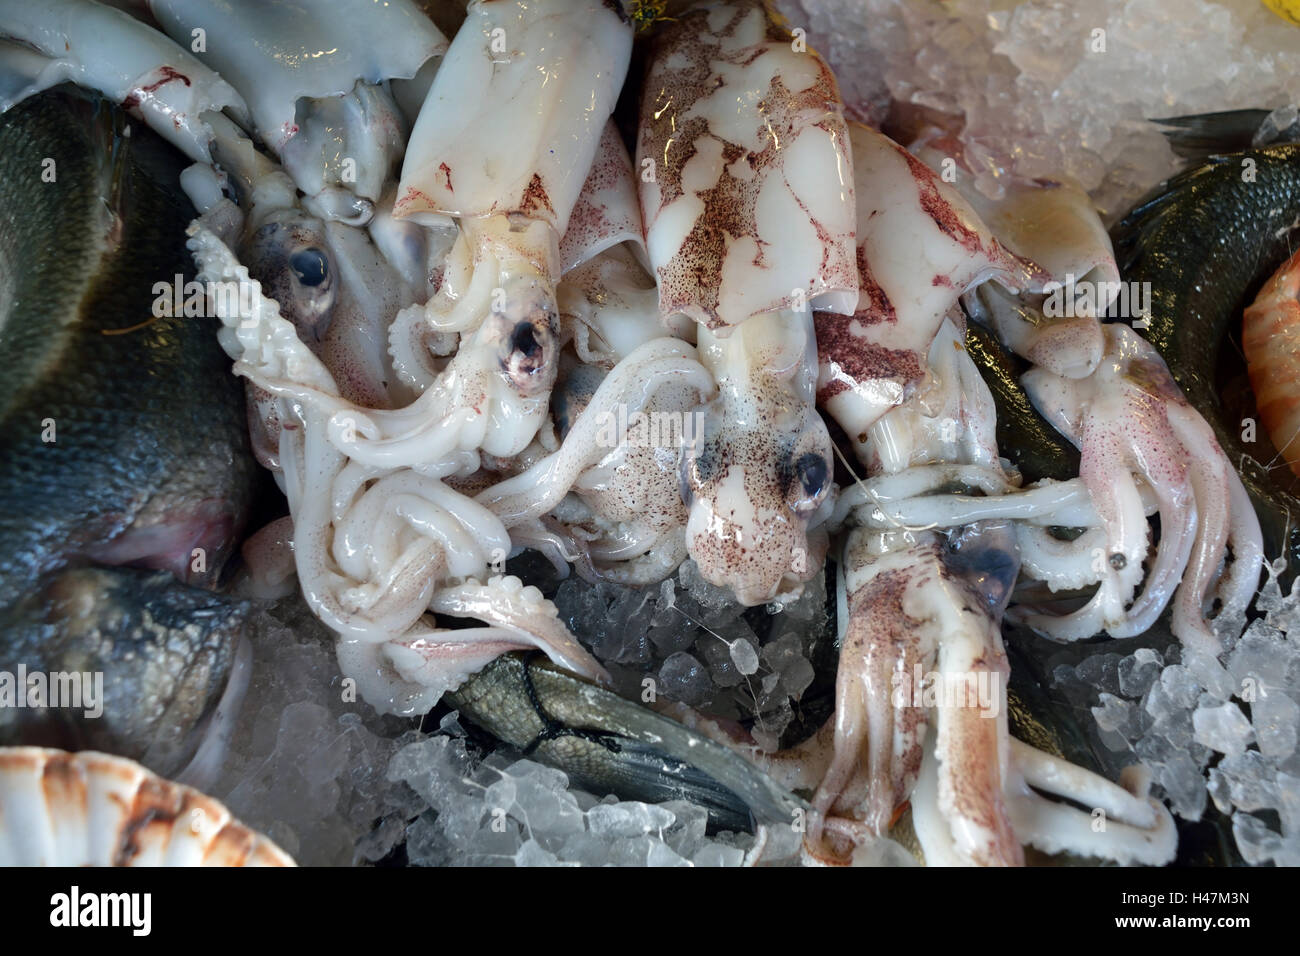 Seafood from the Adriatic Sea on a fish market on the Rialto Bridge of Venice in Italy. - Stock Image